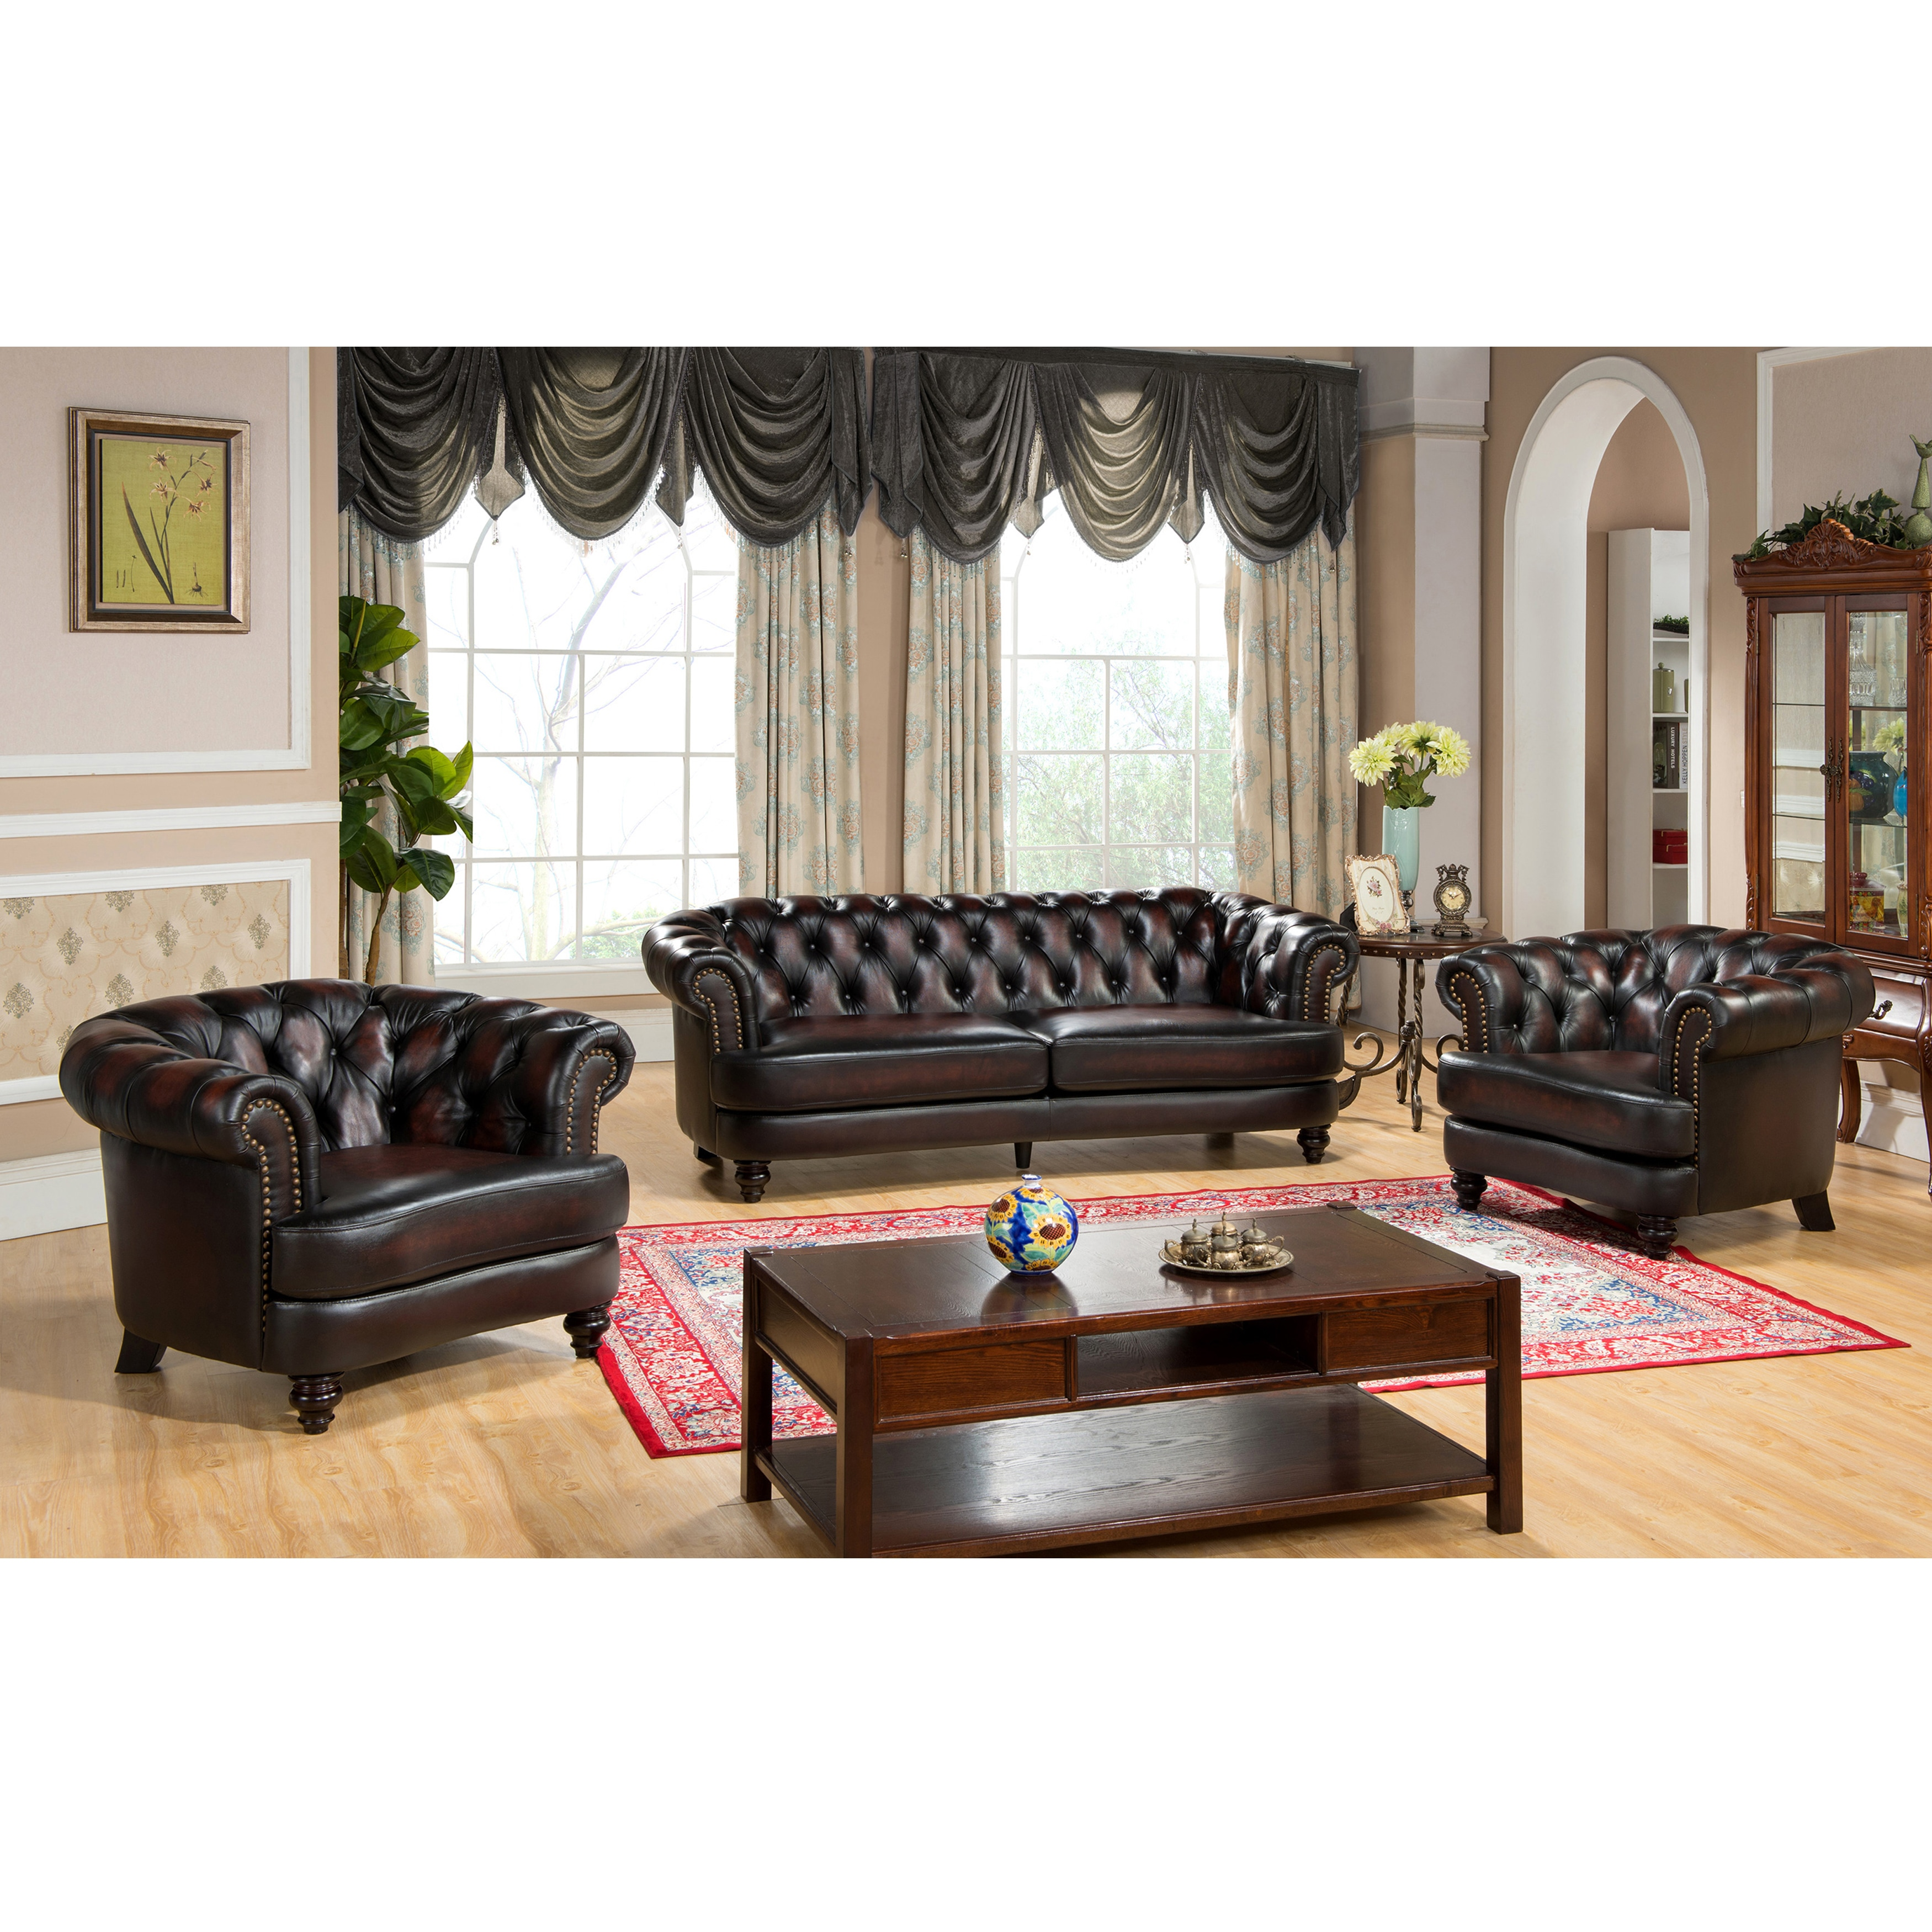 2293 Best Images About Leather Sofas And Living Room: Moore Hand Rubbed Tufted Brown Chesterfield Top Grain